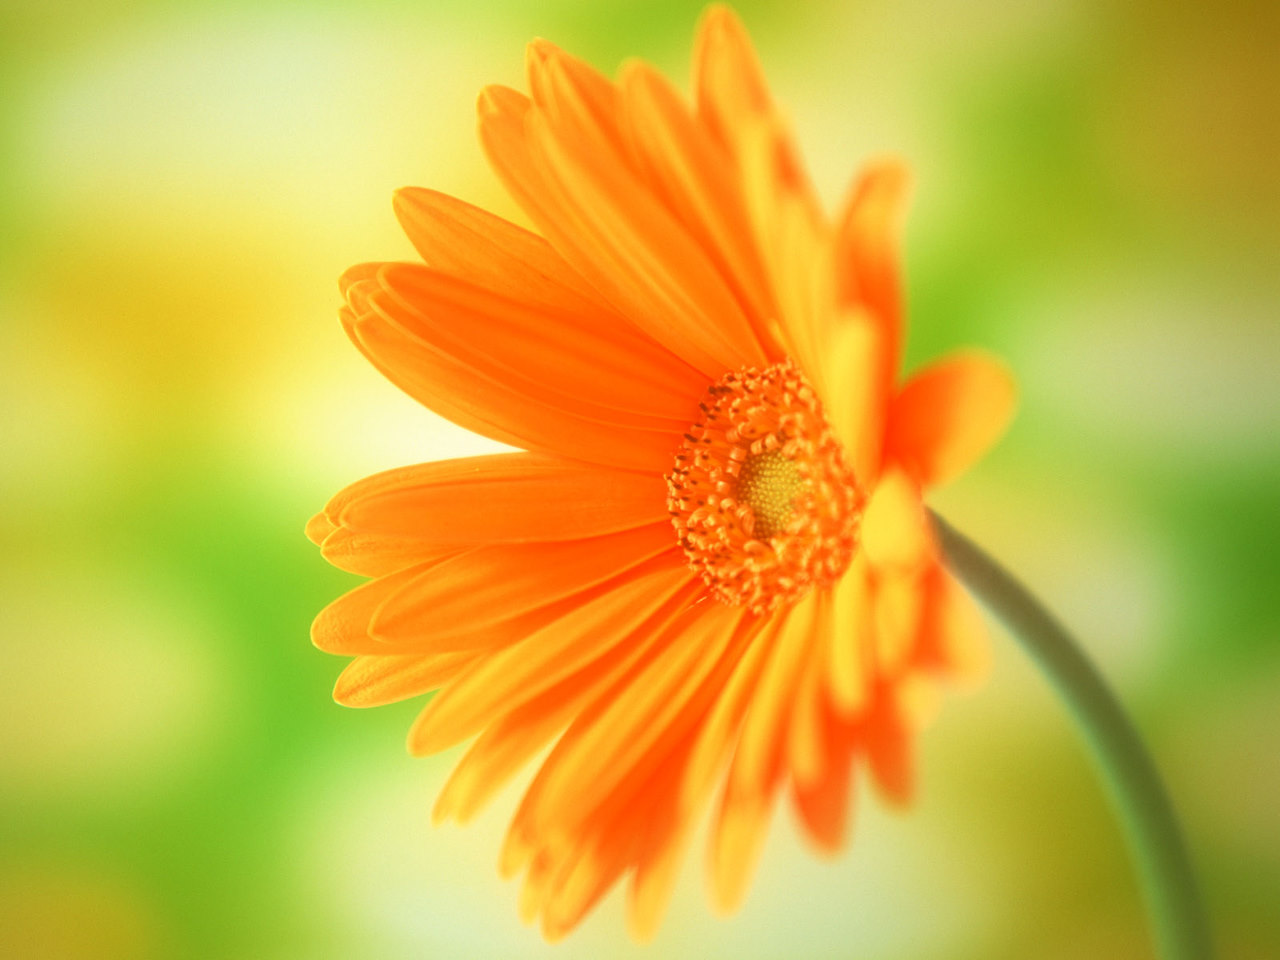 Latest Wallpapers Flowers Wallpapers Flowers Animated Wallpaper